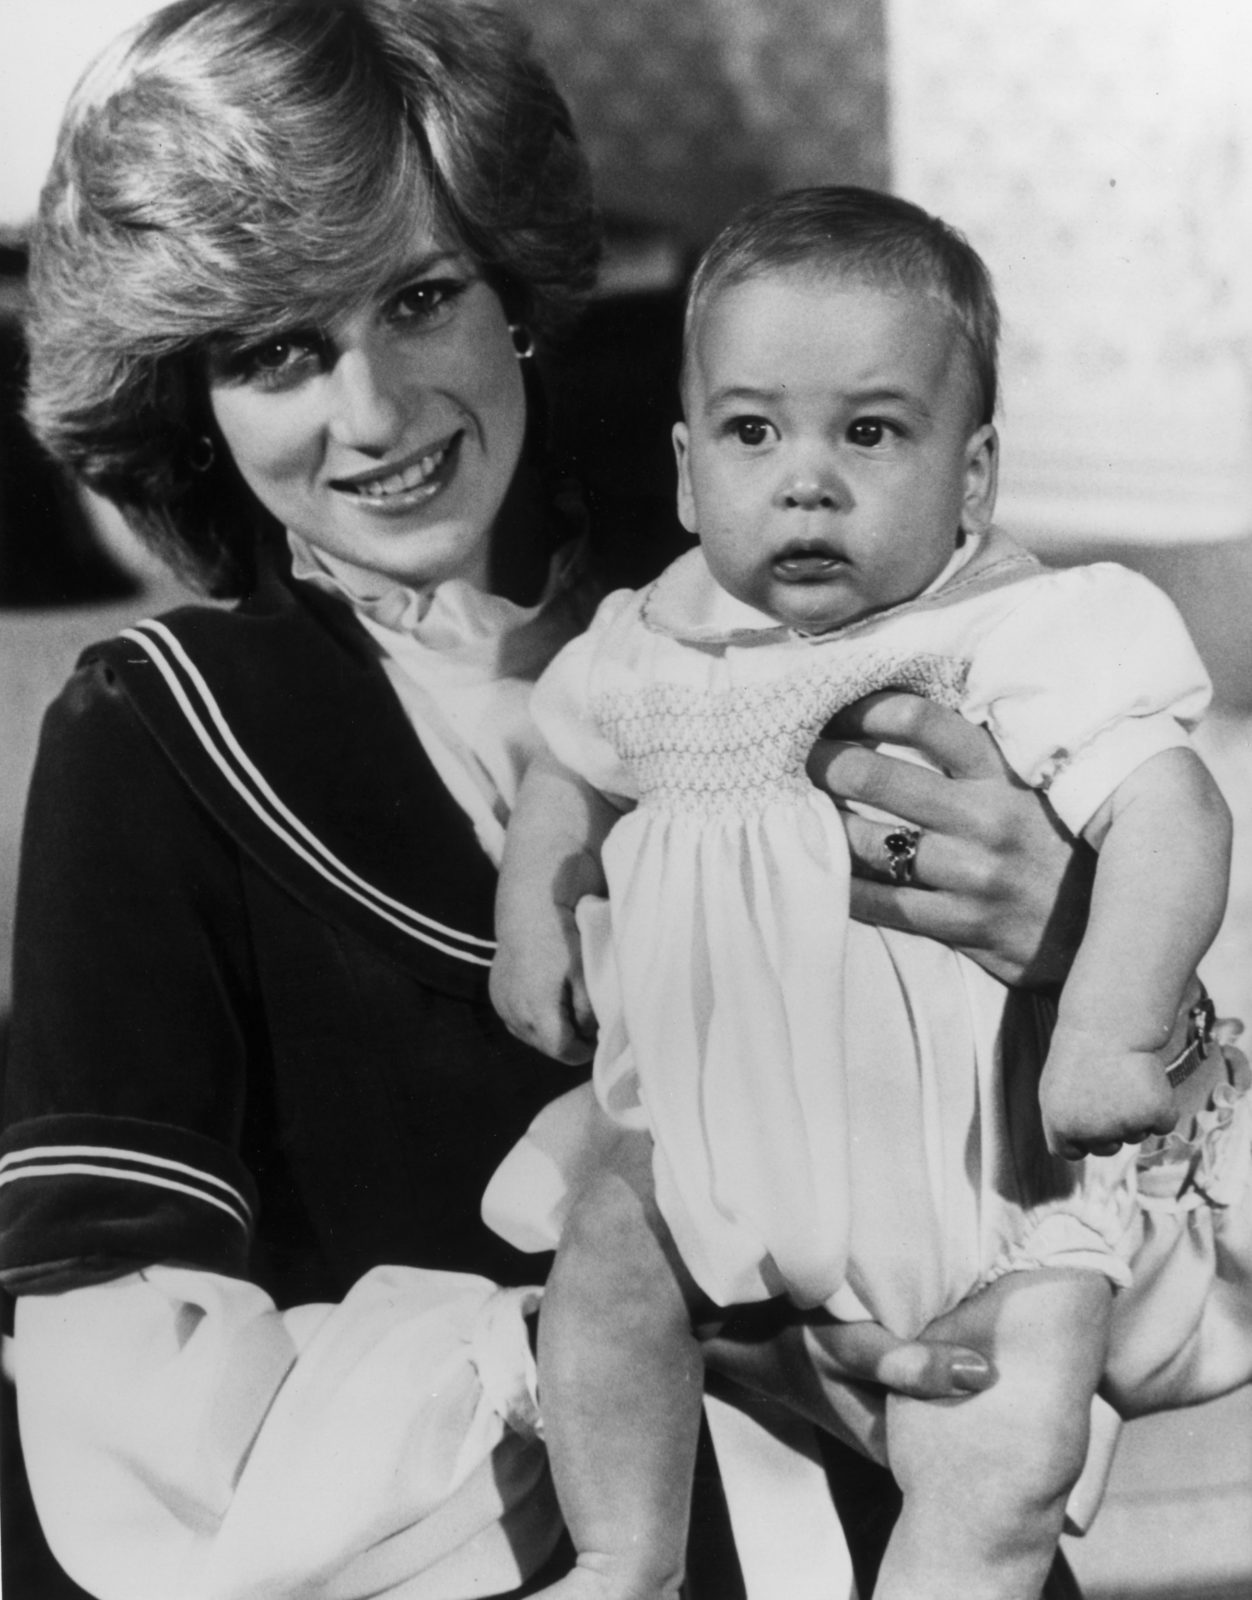 Prince William with his mum Diana in 1982. Source: Getty.